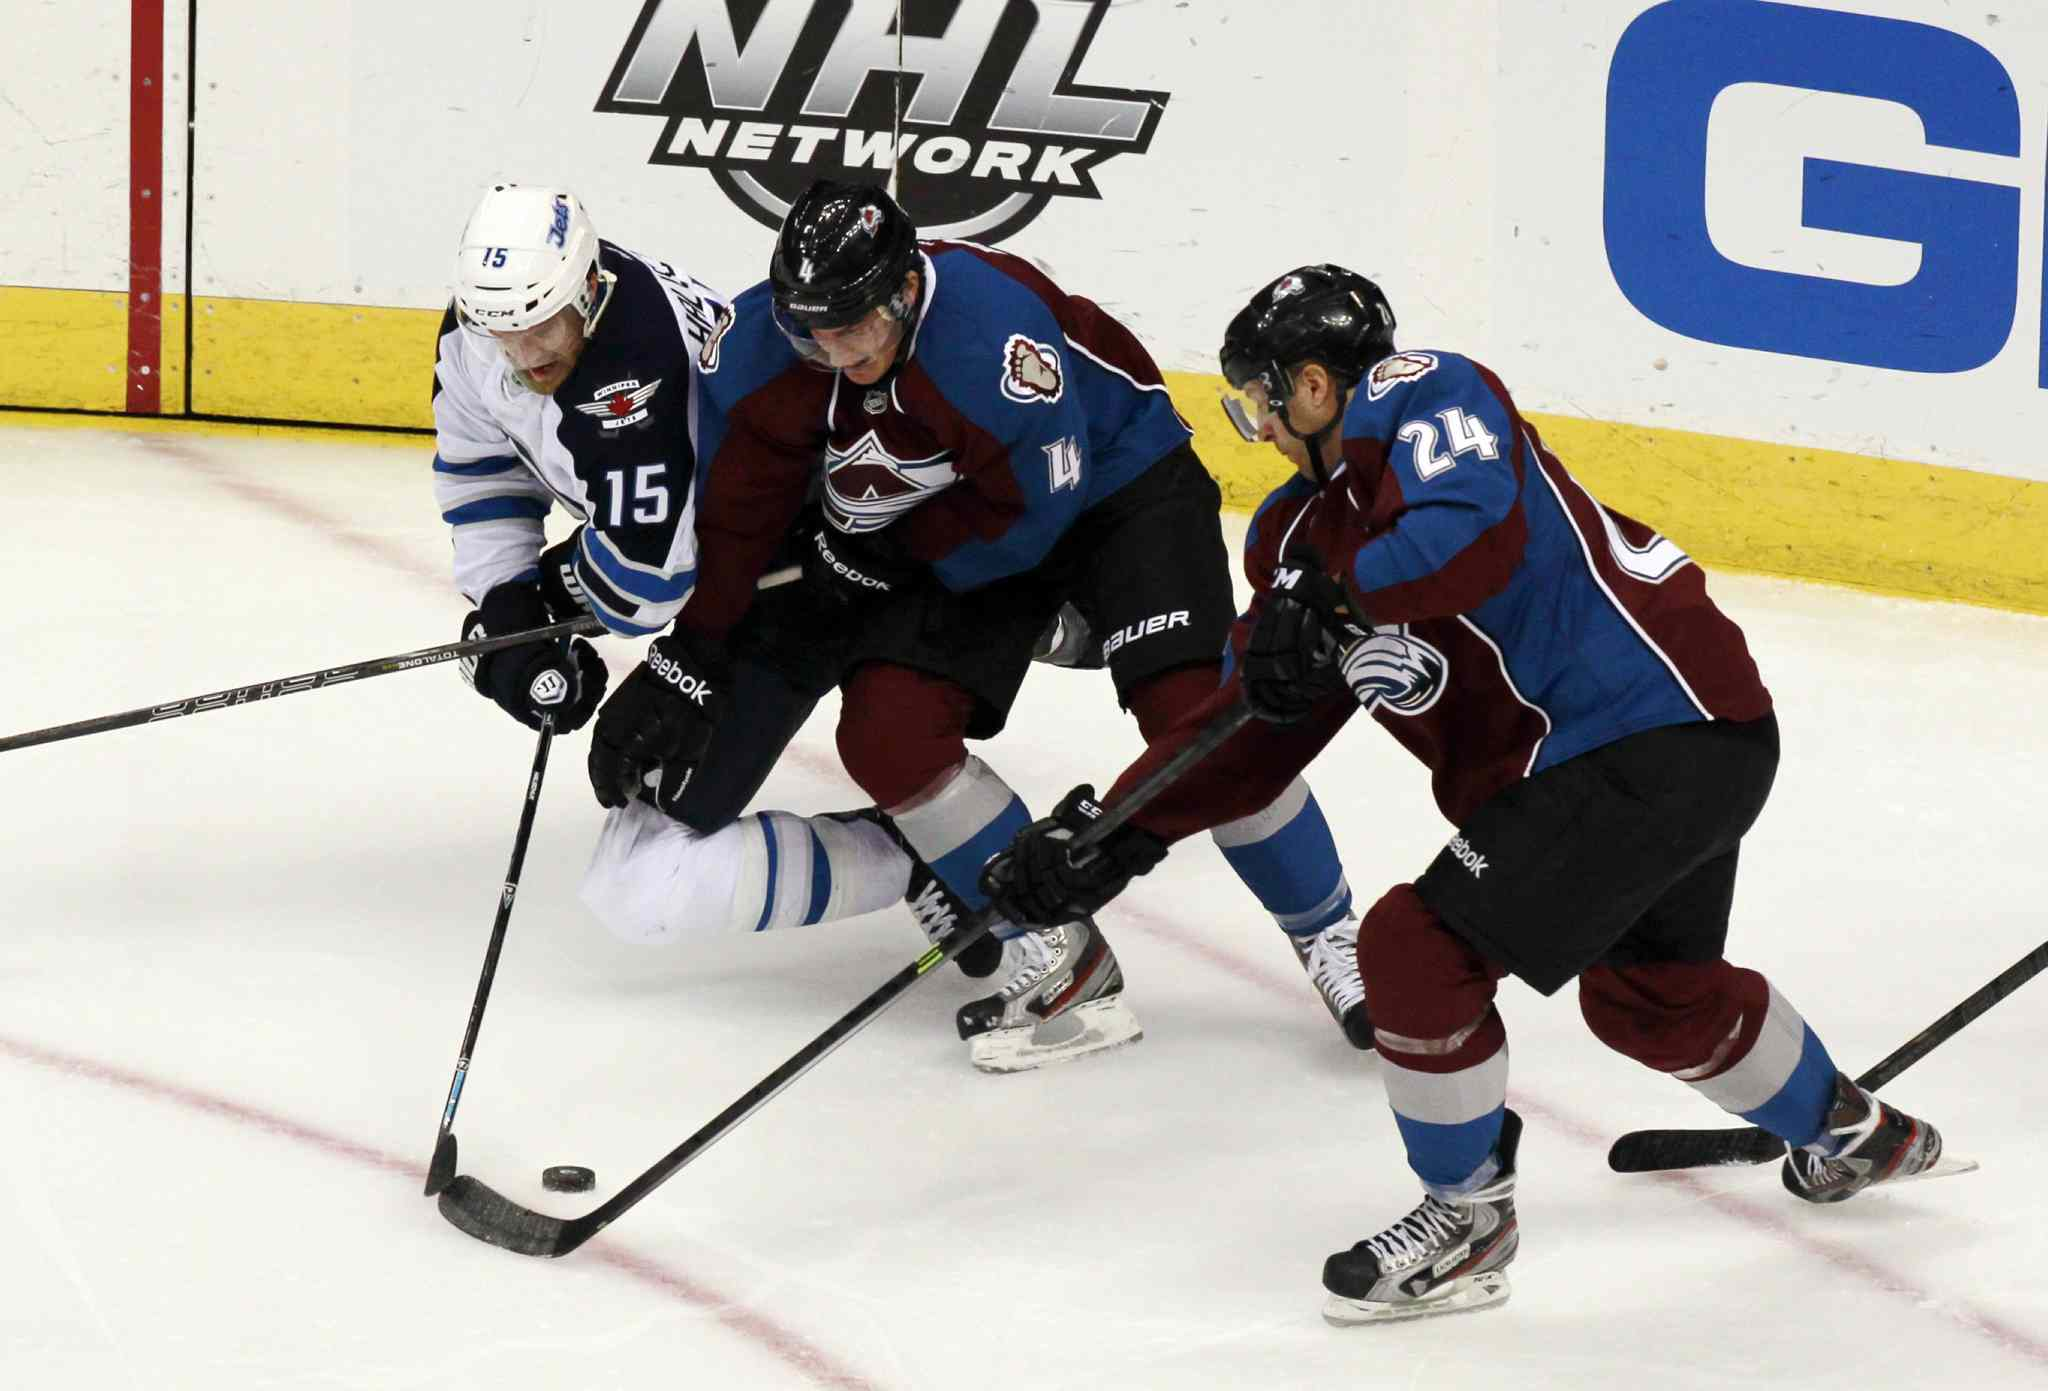 Jets winger Matt Halischuk (left) battles for control of the puck with Colorado Avalanche defenceman Tyson Barrie (centre) and center Marc-Andre Cliche in the third period.